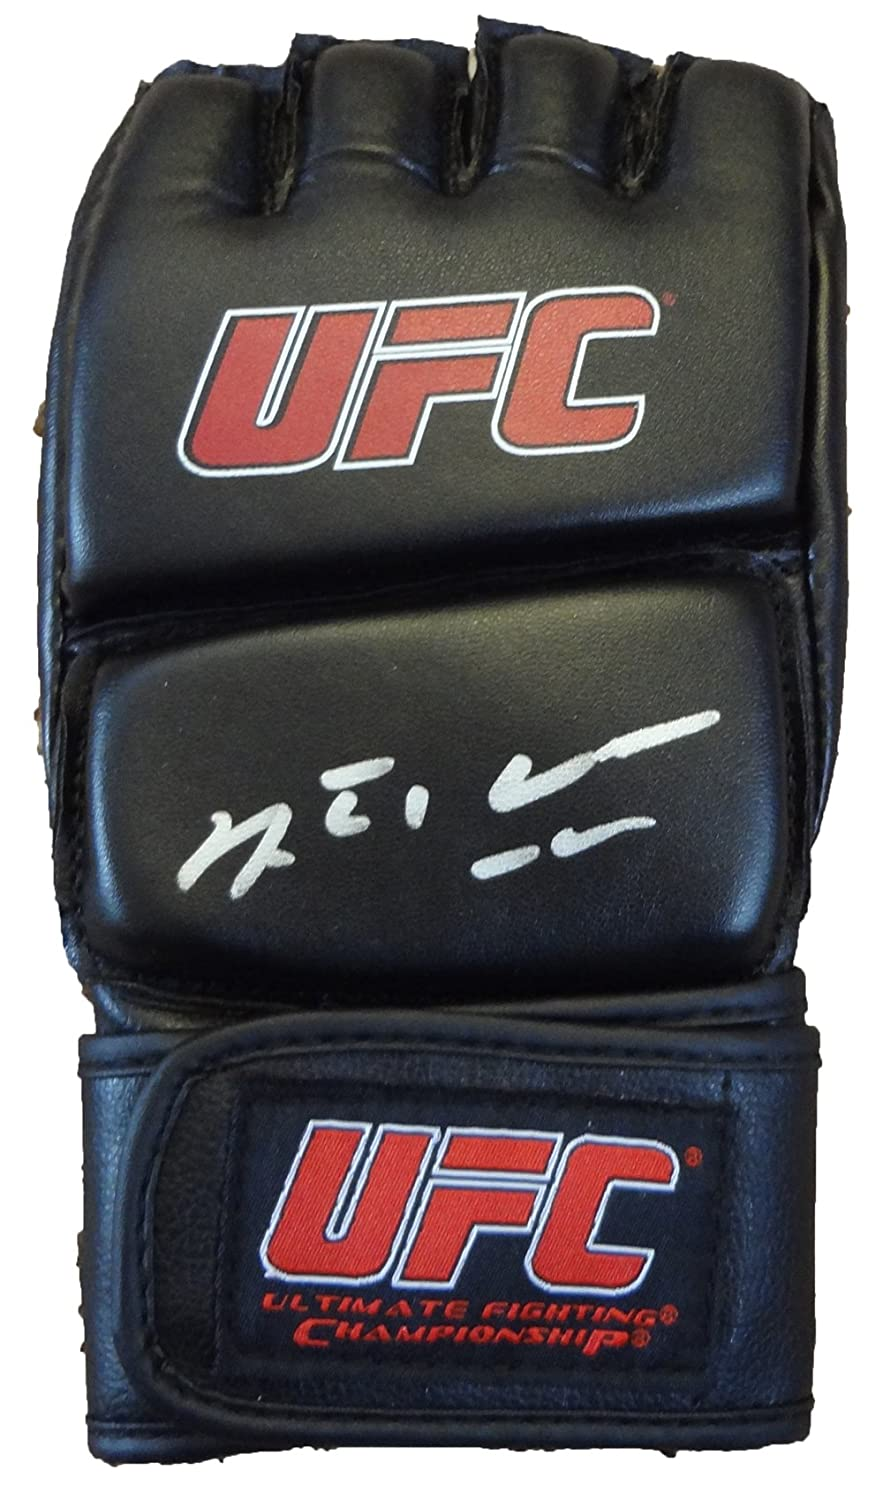 Anderson Silva Autographed UFC Fight Glove W/PROOF, Picture of Anderson Signing For Us. UFC Middleweight Champion, Brazil, Chael Sonnen, Dana White, Chris Weidman